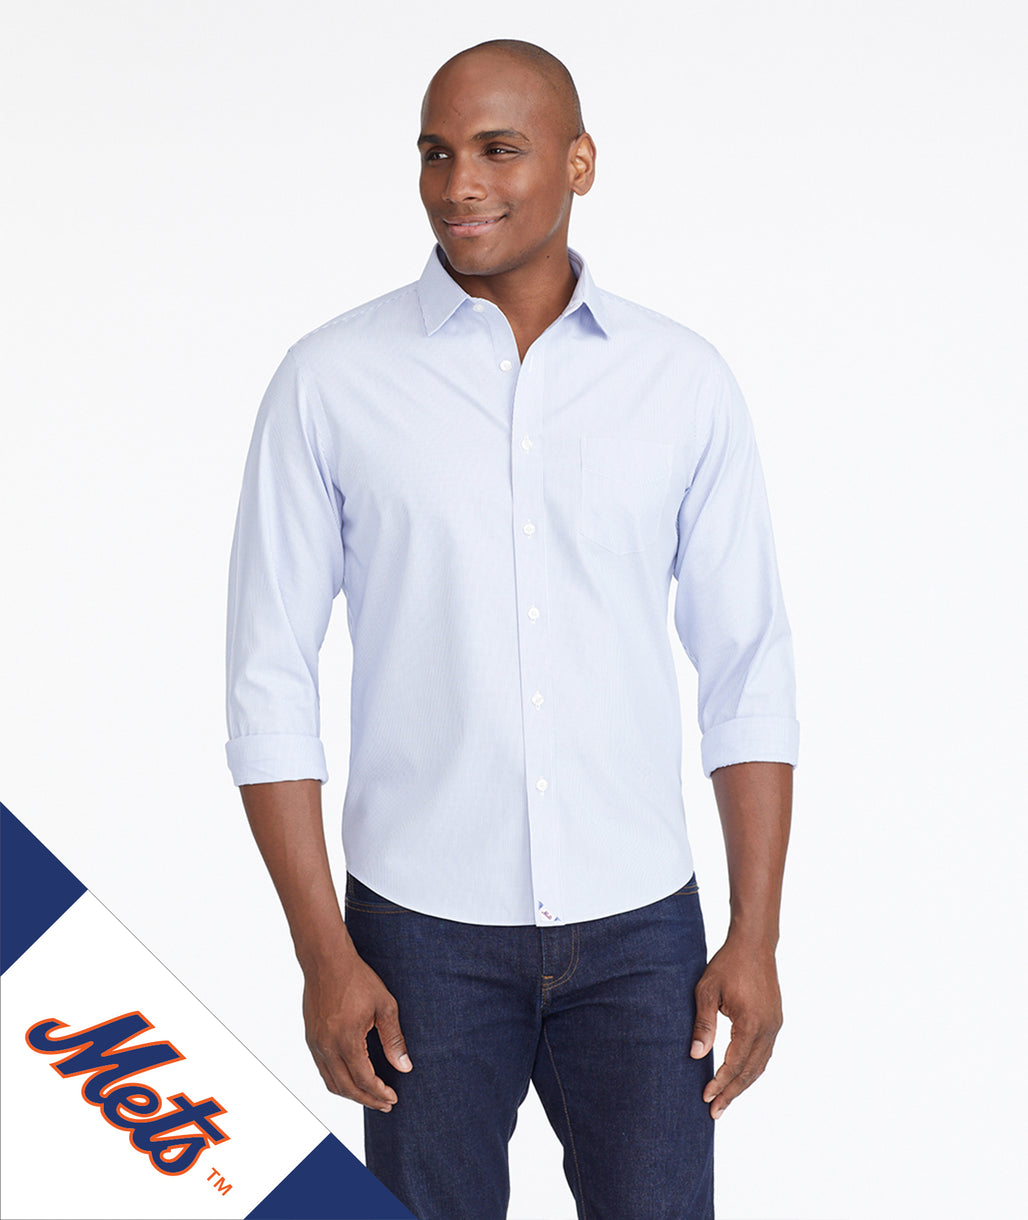 Model wearing a Light Blue Mets Signature Series Button-Down